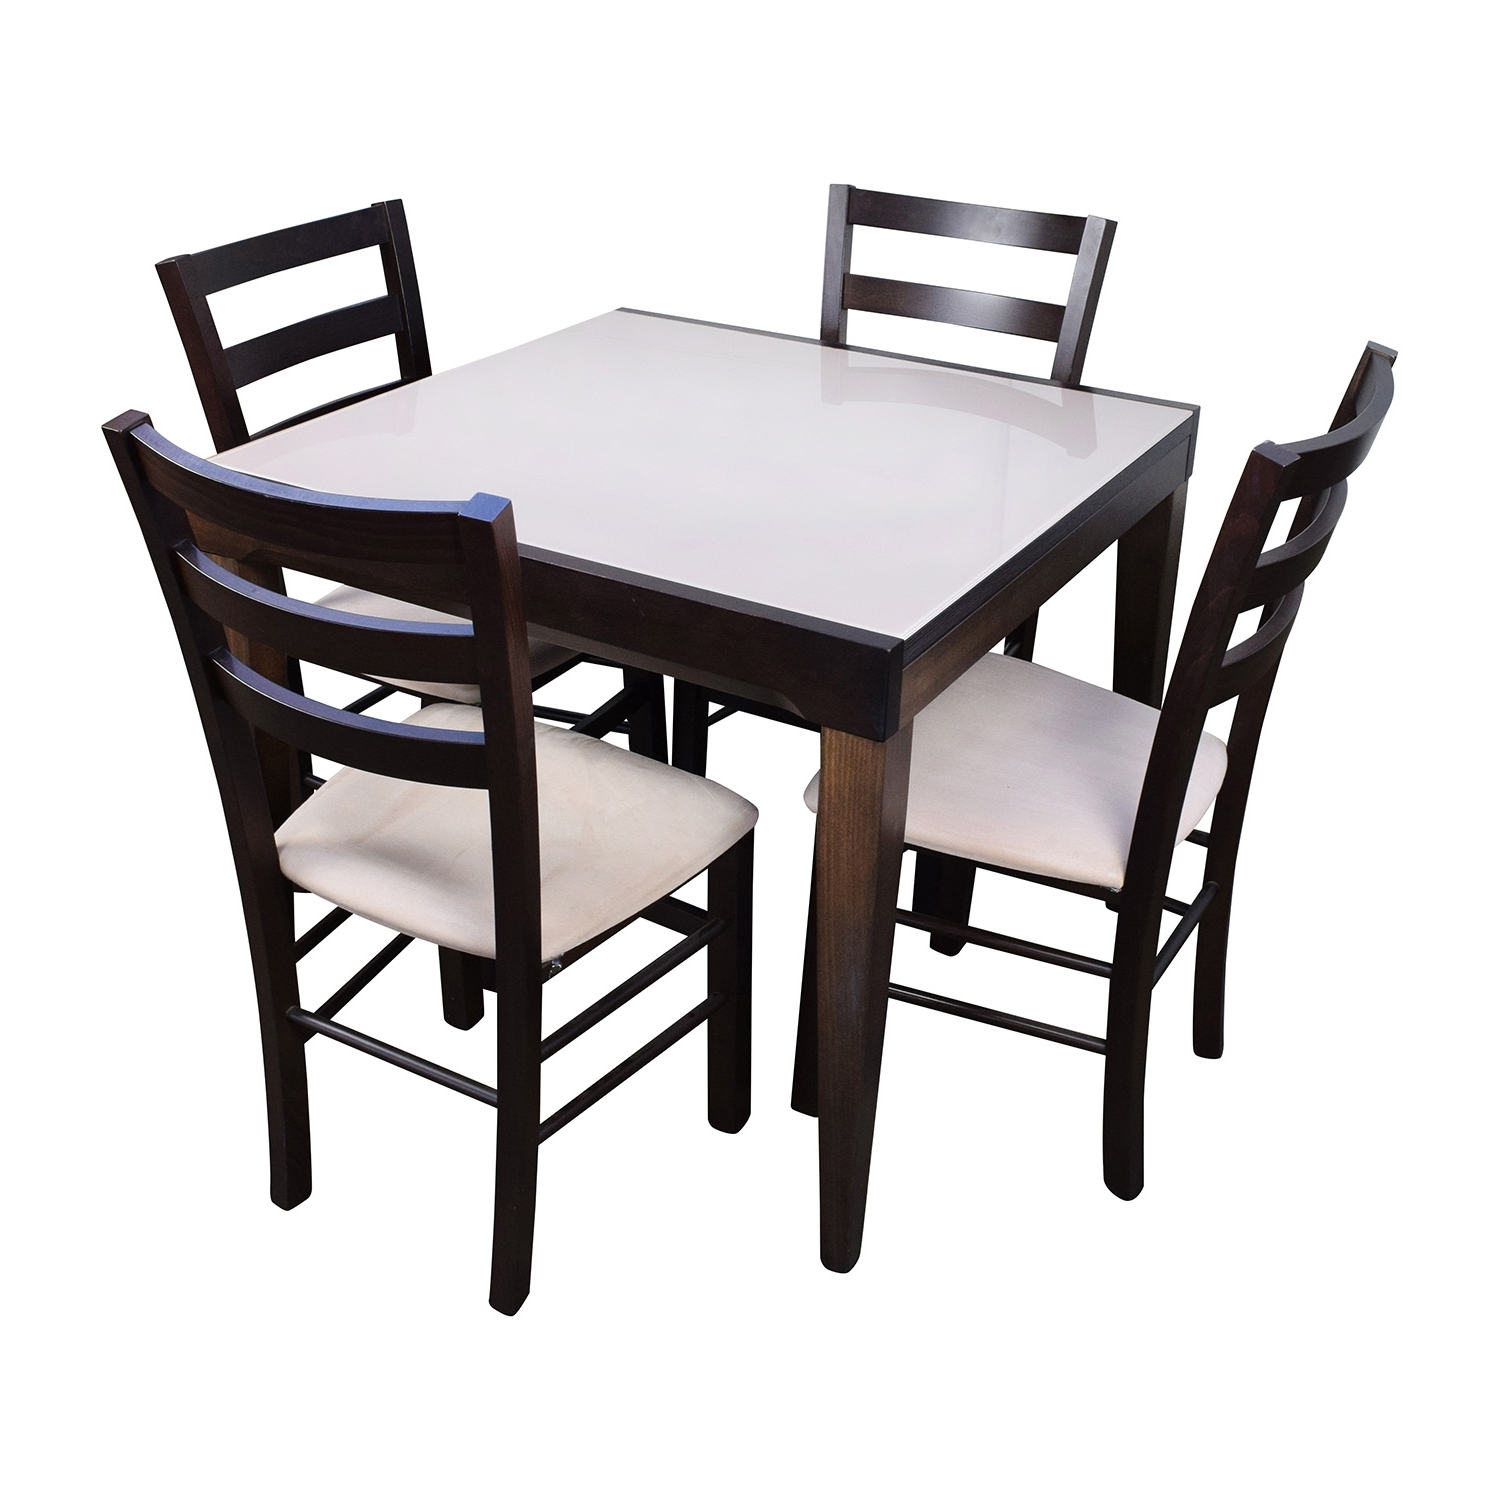 [%82% Off – Macy's Macy's Cafe Latte Five Piece Extendable Dining Set For Current Macie 5 Piece Round Dining Sets|Macie 5 Piece Round Dining Sets With Regard To Most Current 82% Off – Macy's Macy's Cafe Latte Five Piece Extendable Dining Set|Most Recent Macie 5 Piece Round Dining Sets With Regard To 82% Off – Macy's Macy's Cafe Latte Five Piece Extendable Dining Set|Recent 82% Off – Macy's Macy's Cafe Latte Five Piece Extendable Dining Set Intended For Macie 5 Piece Round Dining Sets%] (View 2 of 25)